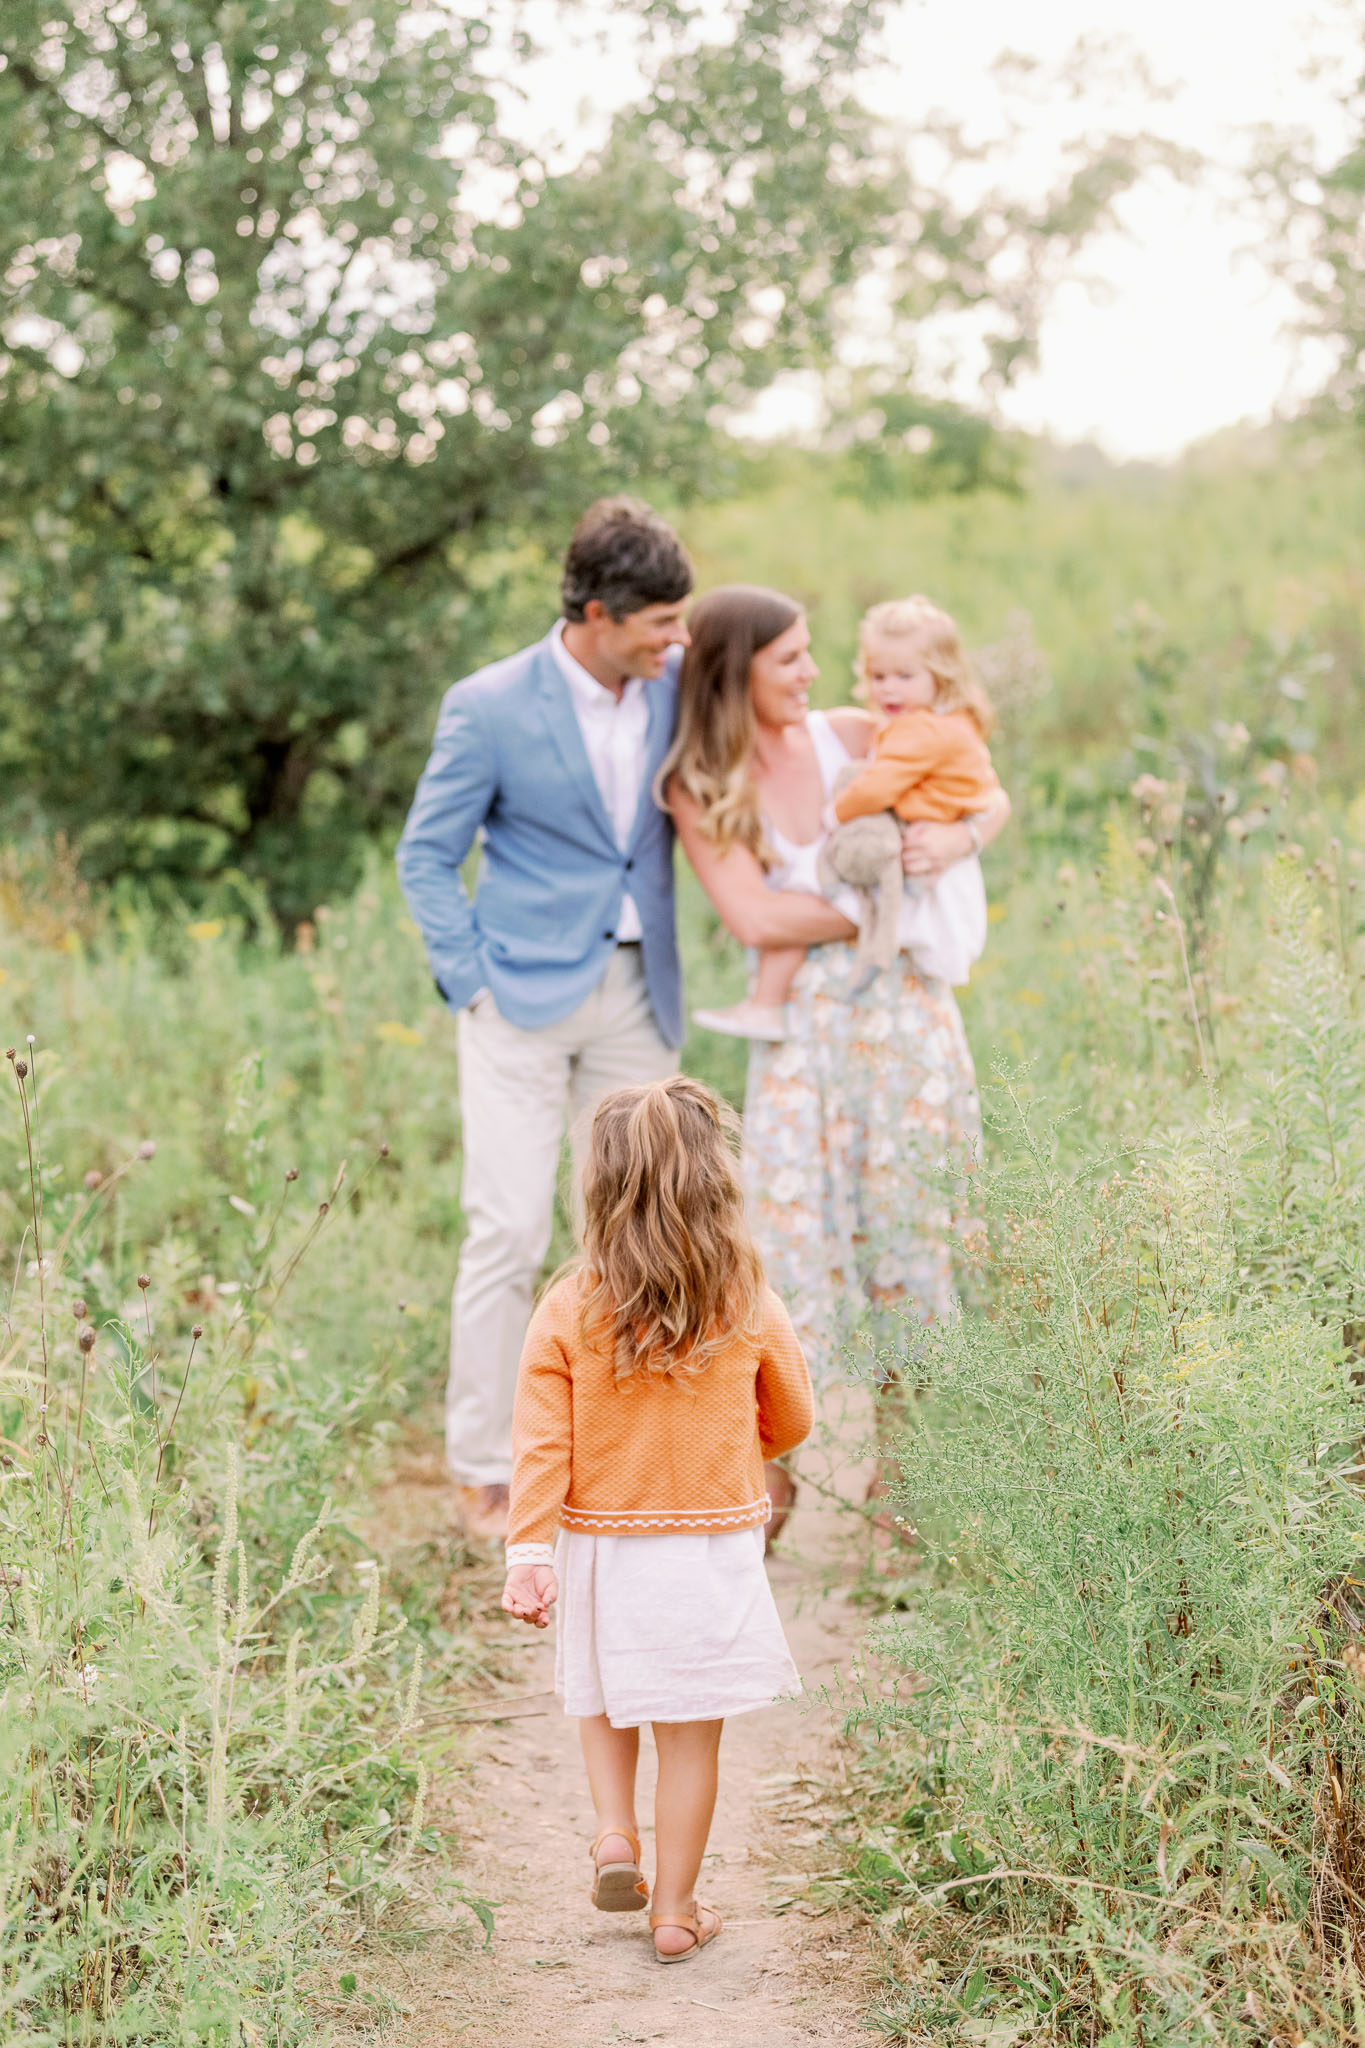 Light and Airy Chicago Naples Lifestyle Family Photographer – Mayslake Forest Preserve Family Photos-57